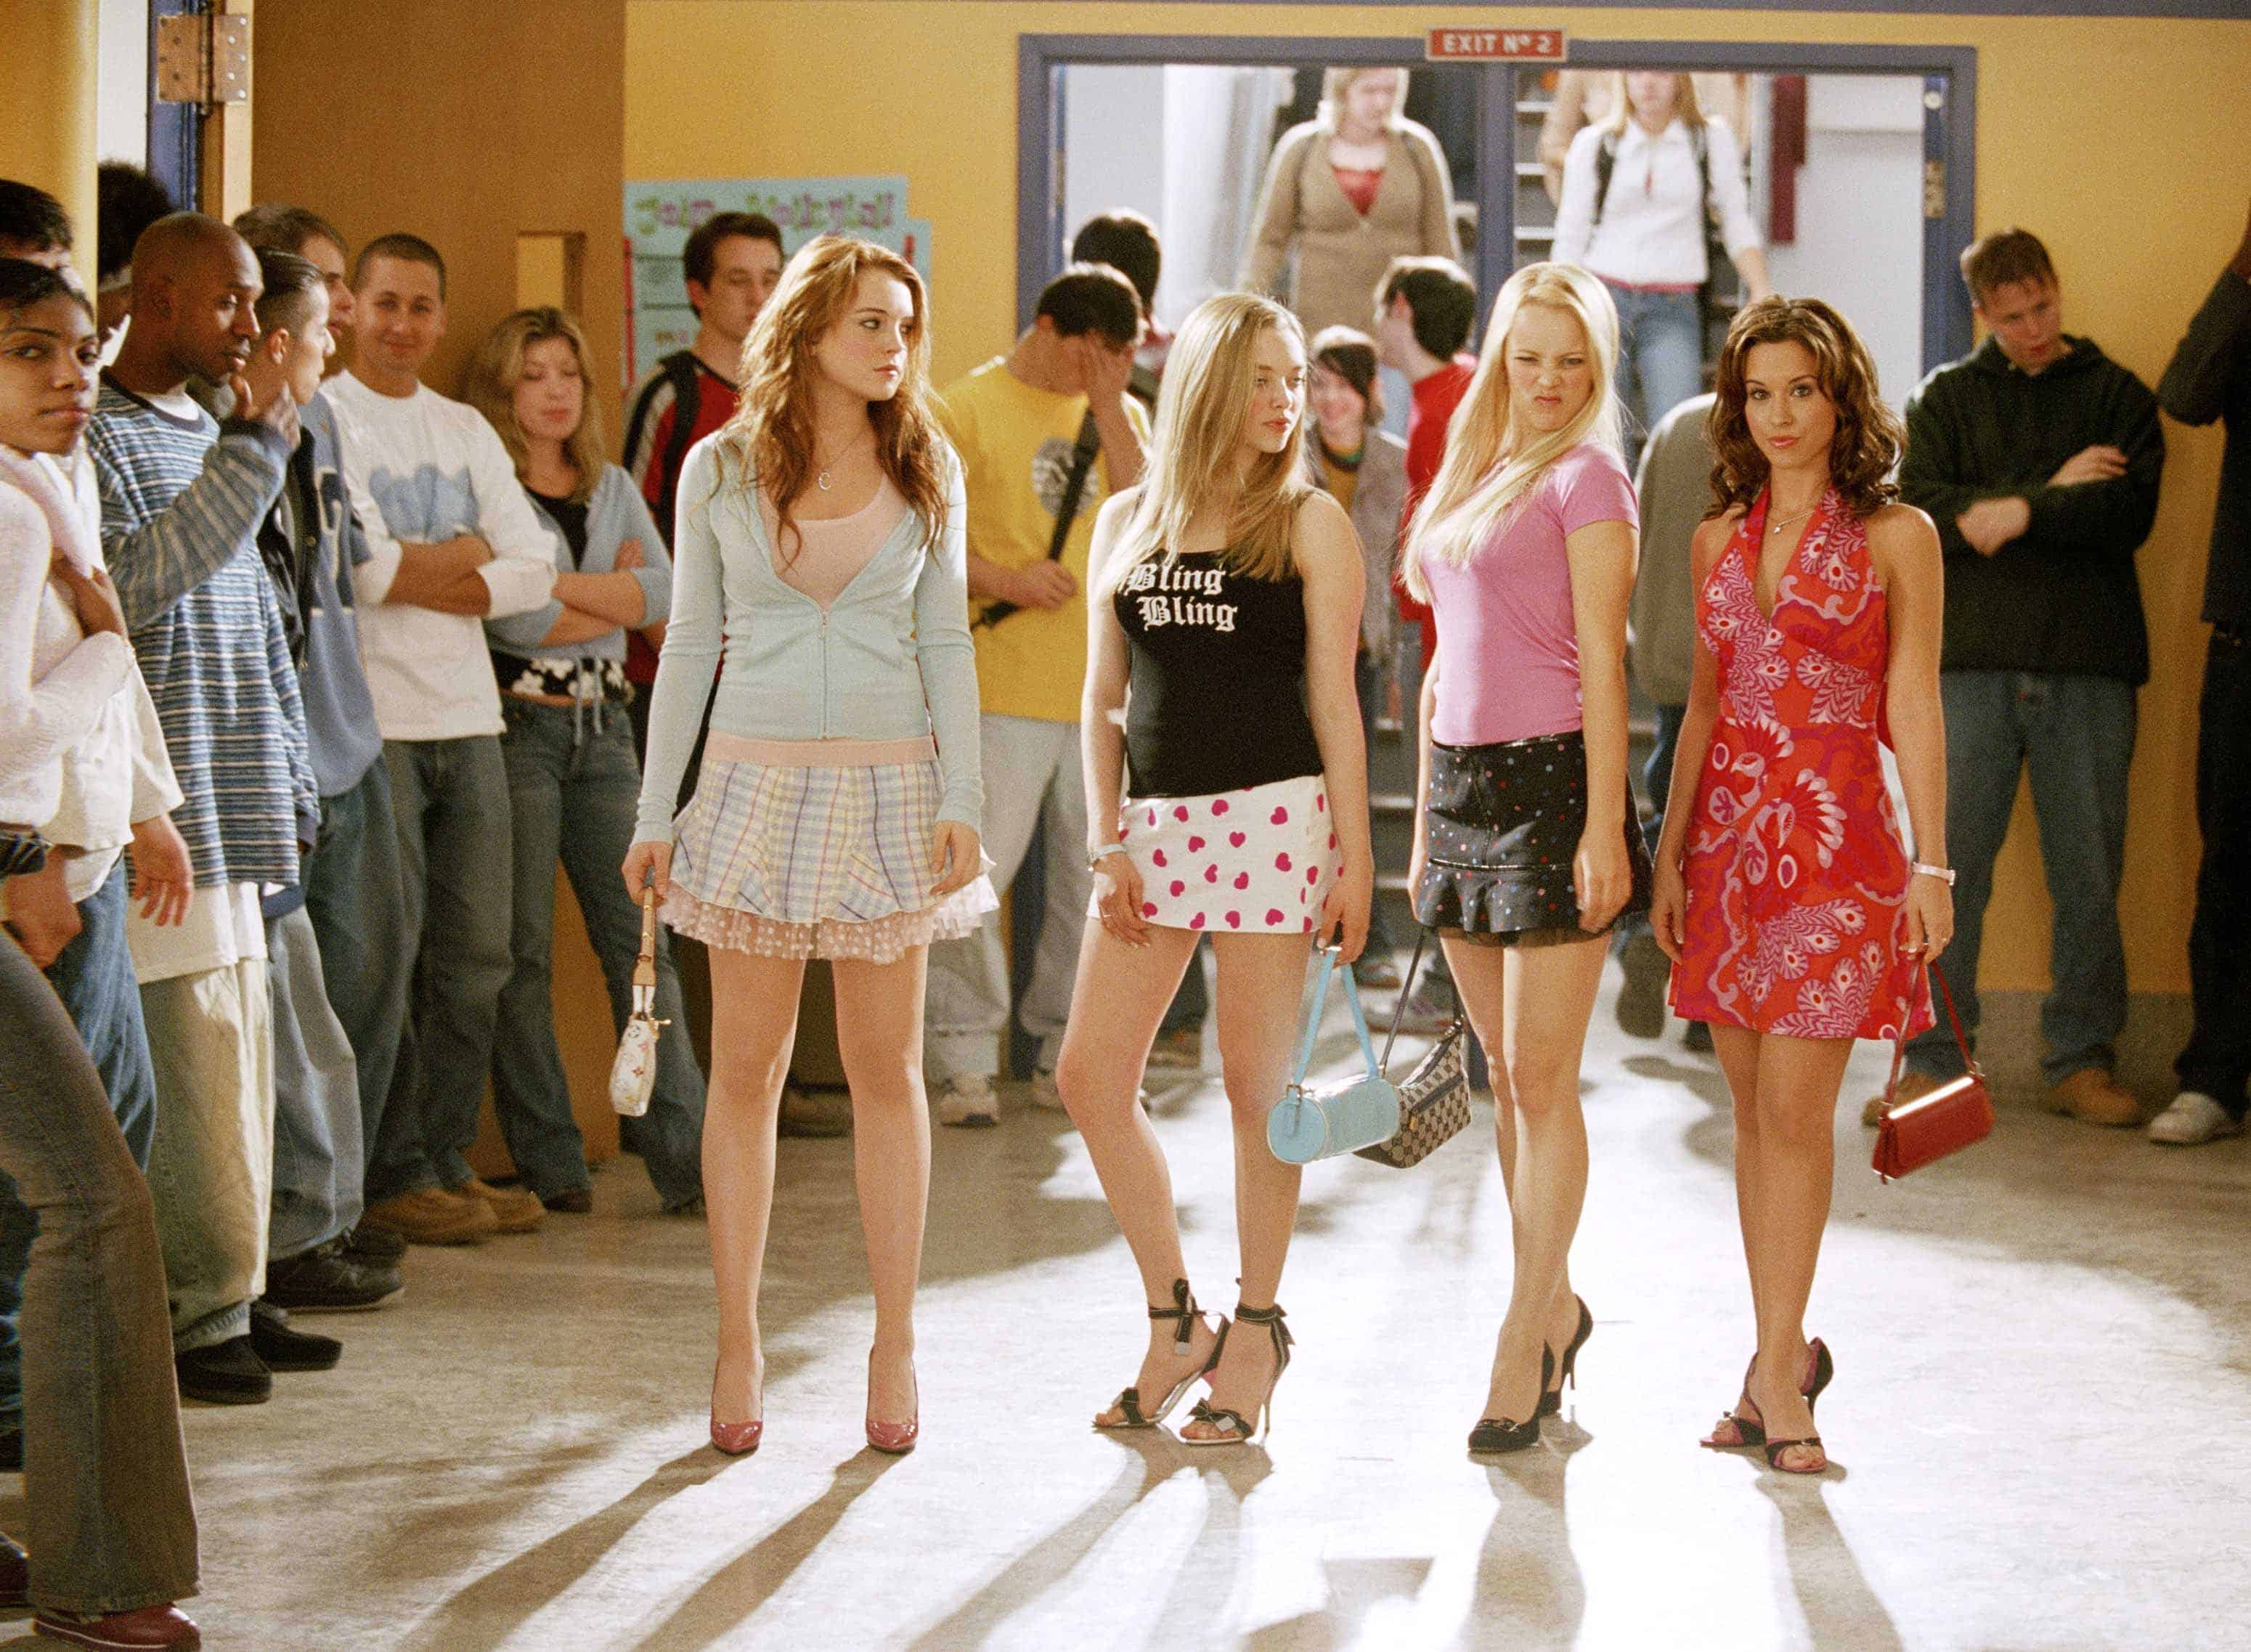 Mean Girls, Lindsay Lohan, Amanda Seyfried, Rachel Mcadams, Lacey Chabert